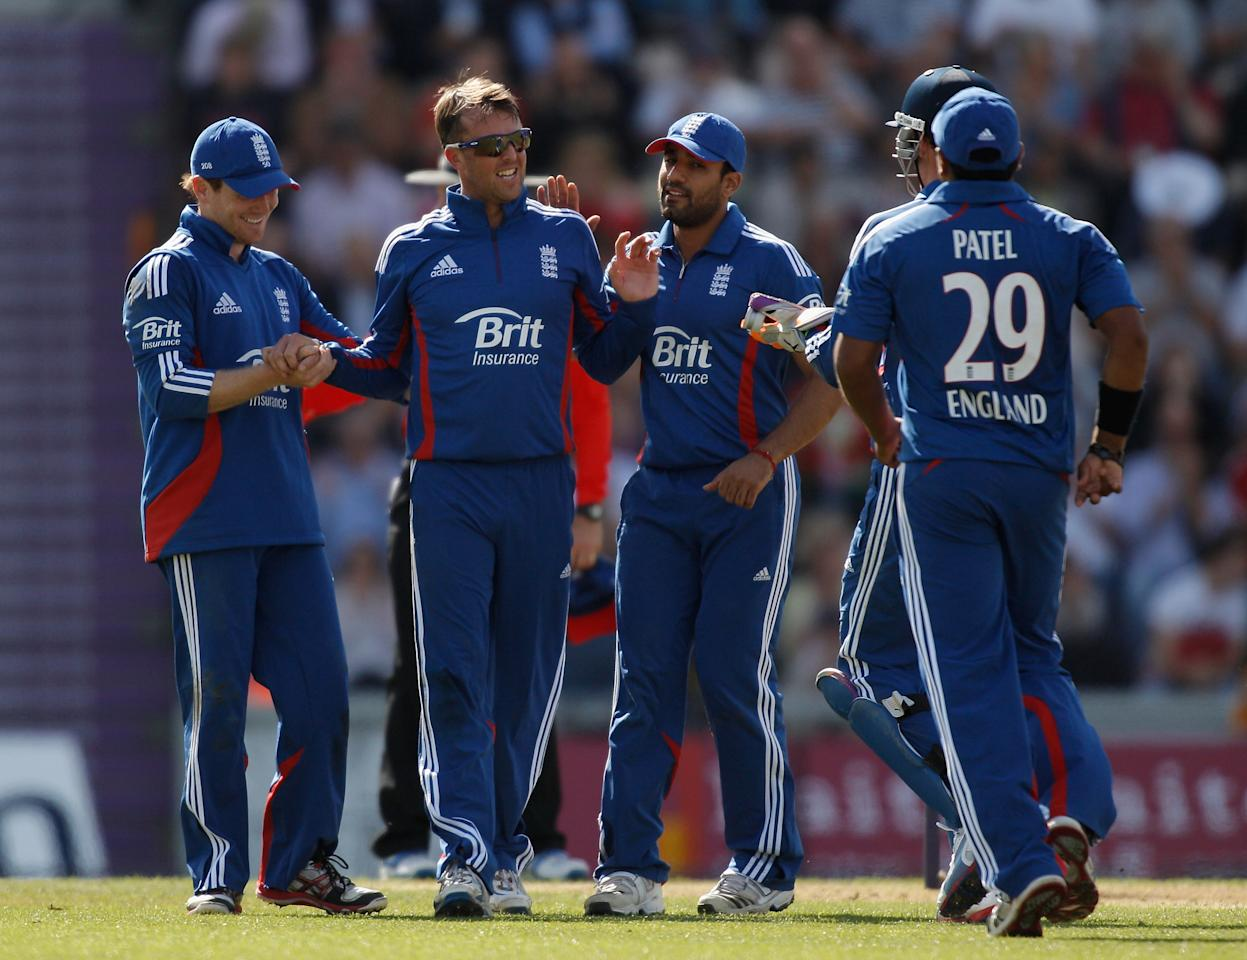 SOUTHAMPTON, ENGLAND - AUGUST 28:  Graeme Swann of England (2L) celebrates with teammates after dismissing Dean Elgar of South Africa (not pictured) during the 2nd NatWest Series ODI match between England and South Africa at the Ageas Bowl on August 28, 2012 in Southampton, England.  (Photo by Harry Engels/Getty Images)